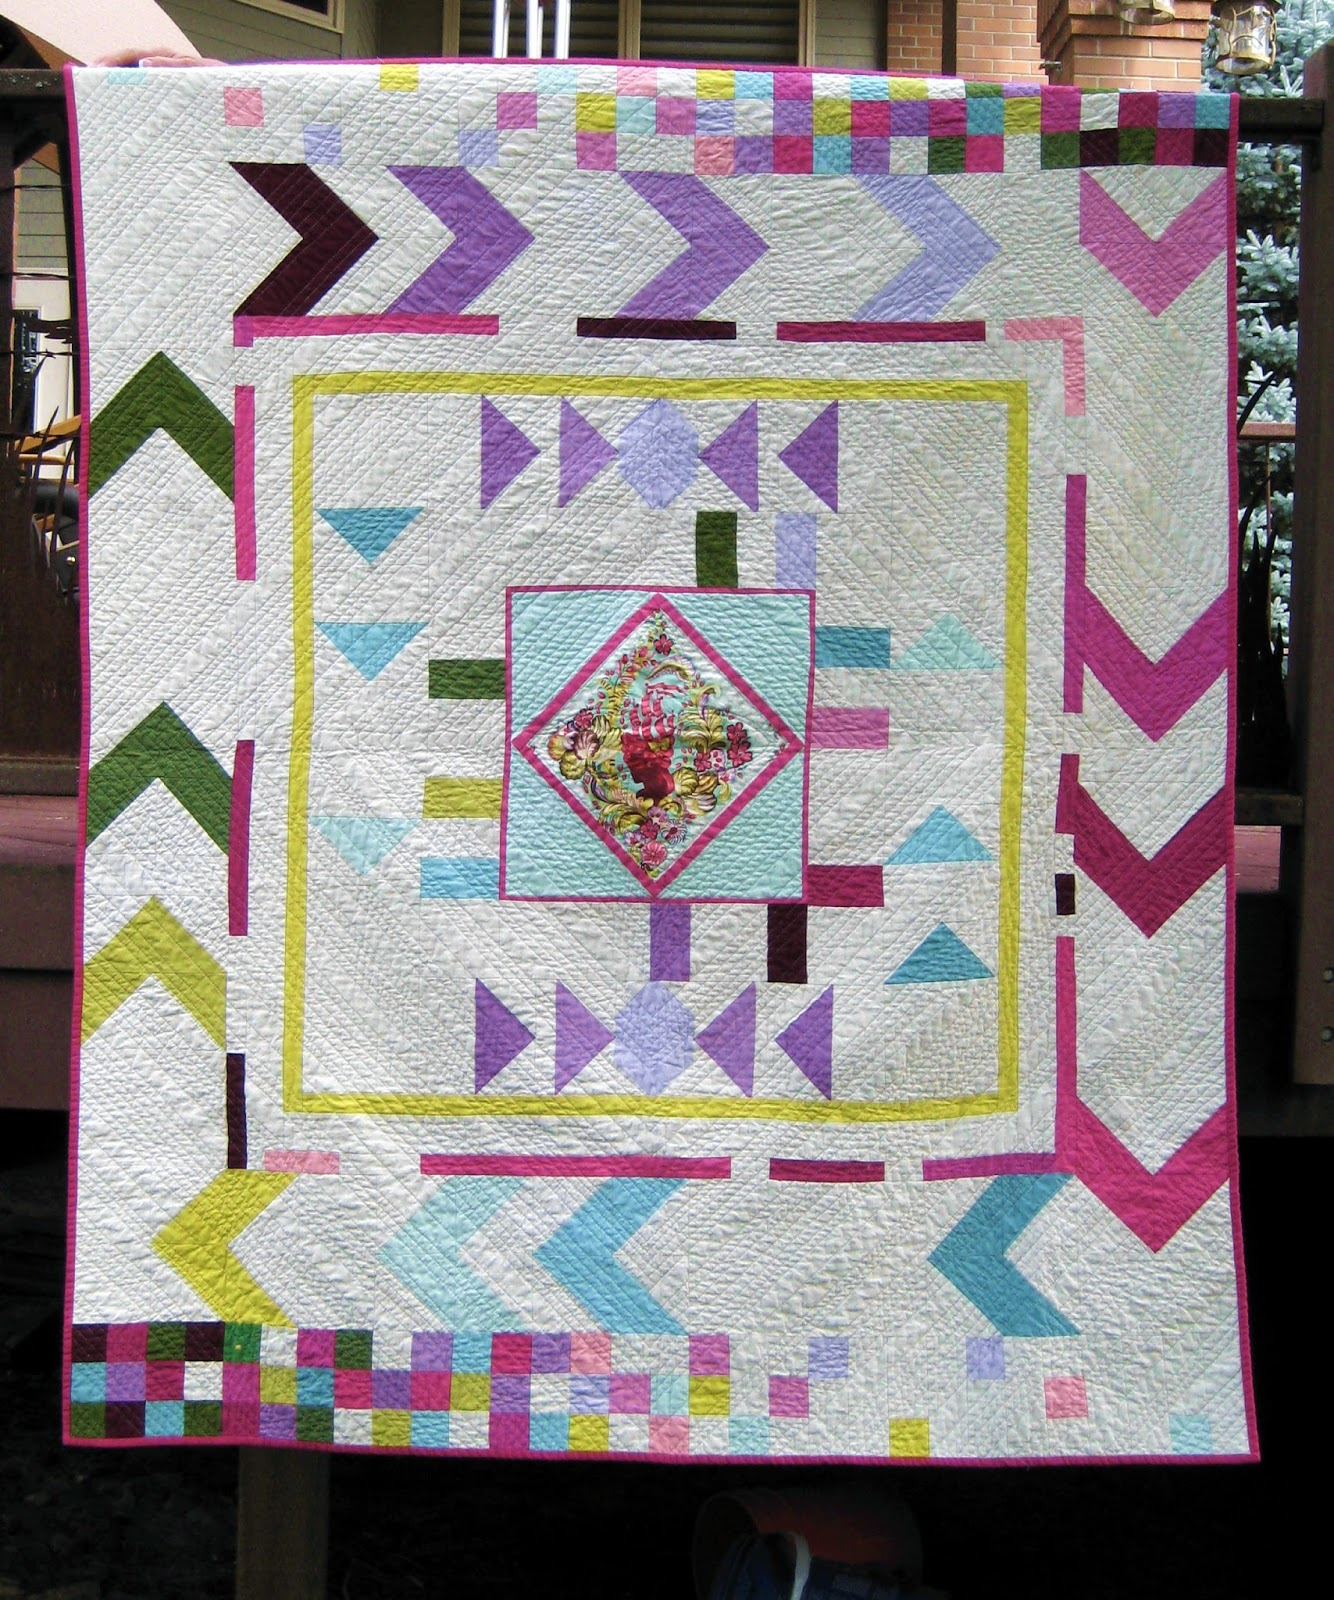 quilt for border basket is childhood quilter medallion liberated q